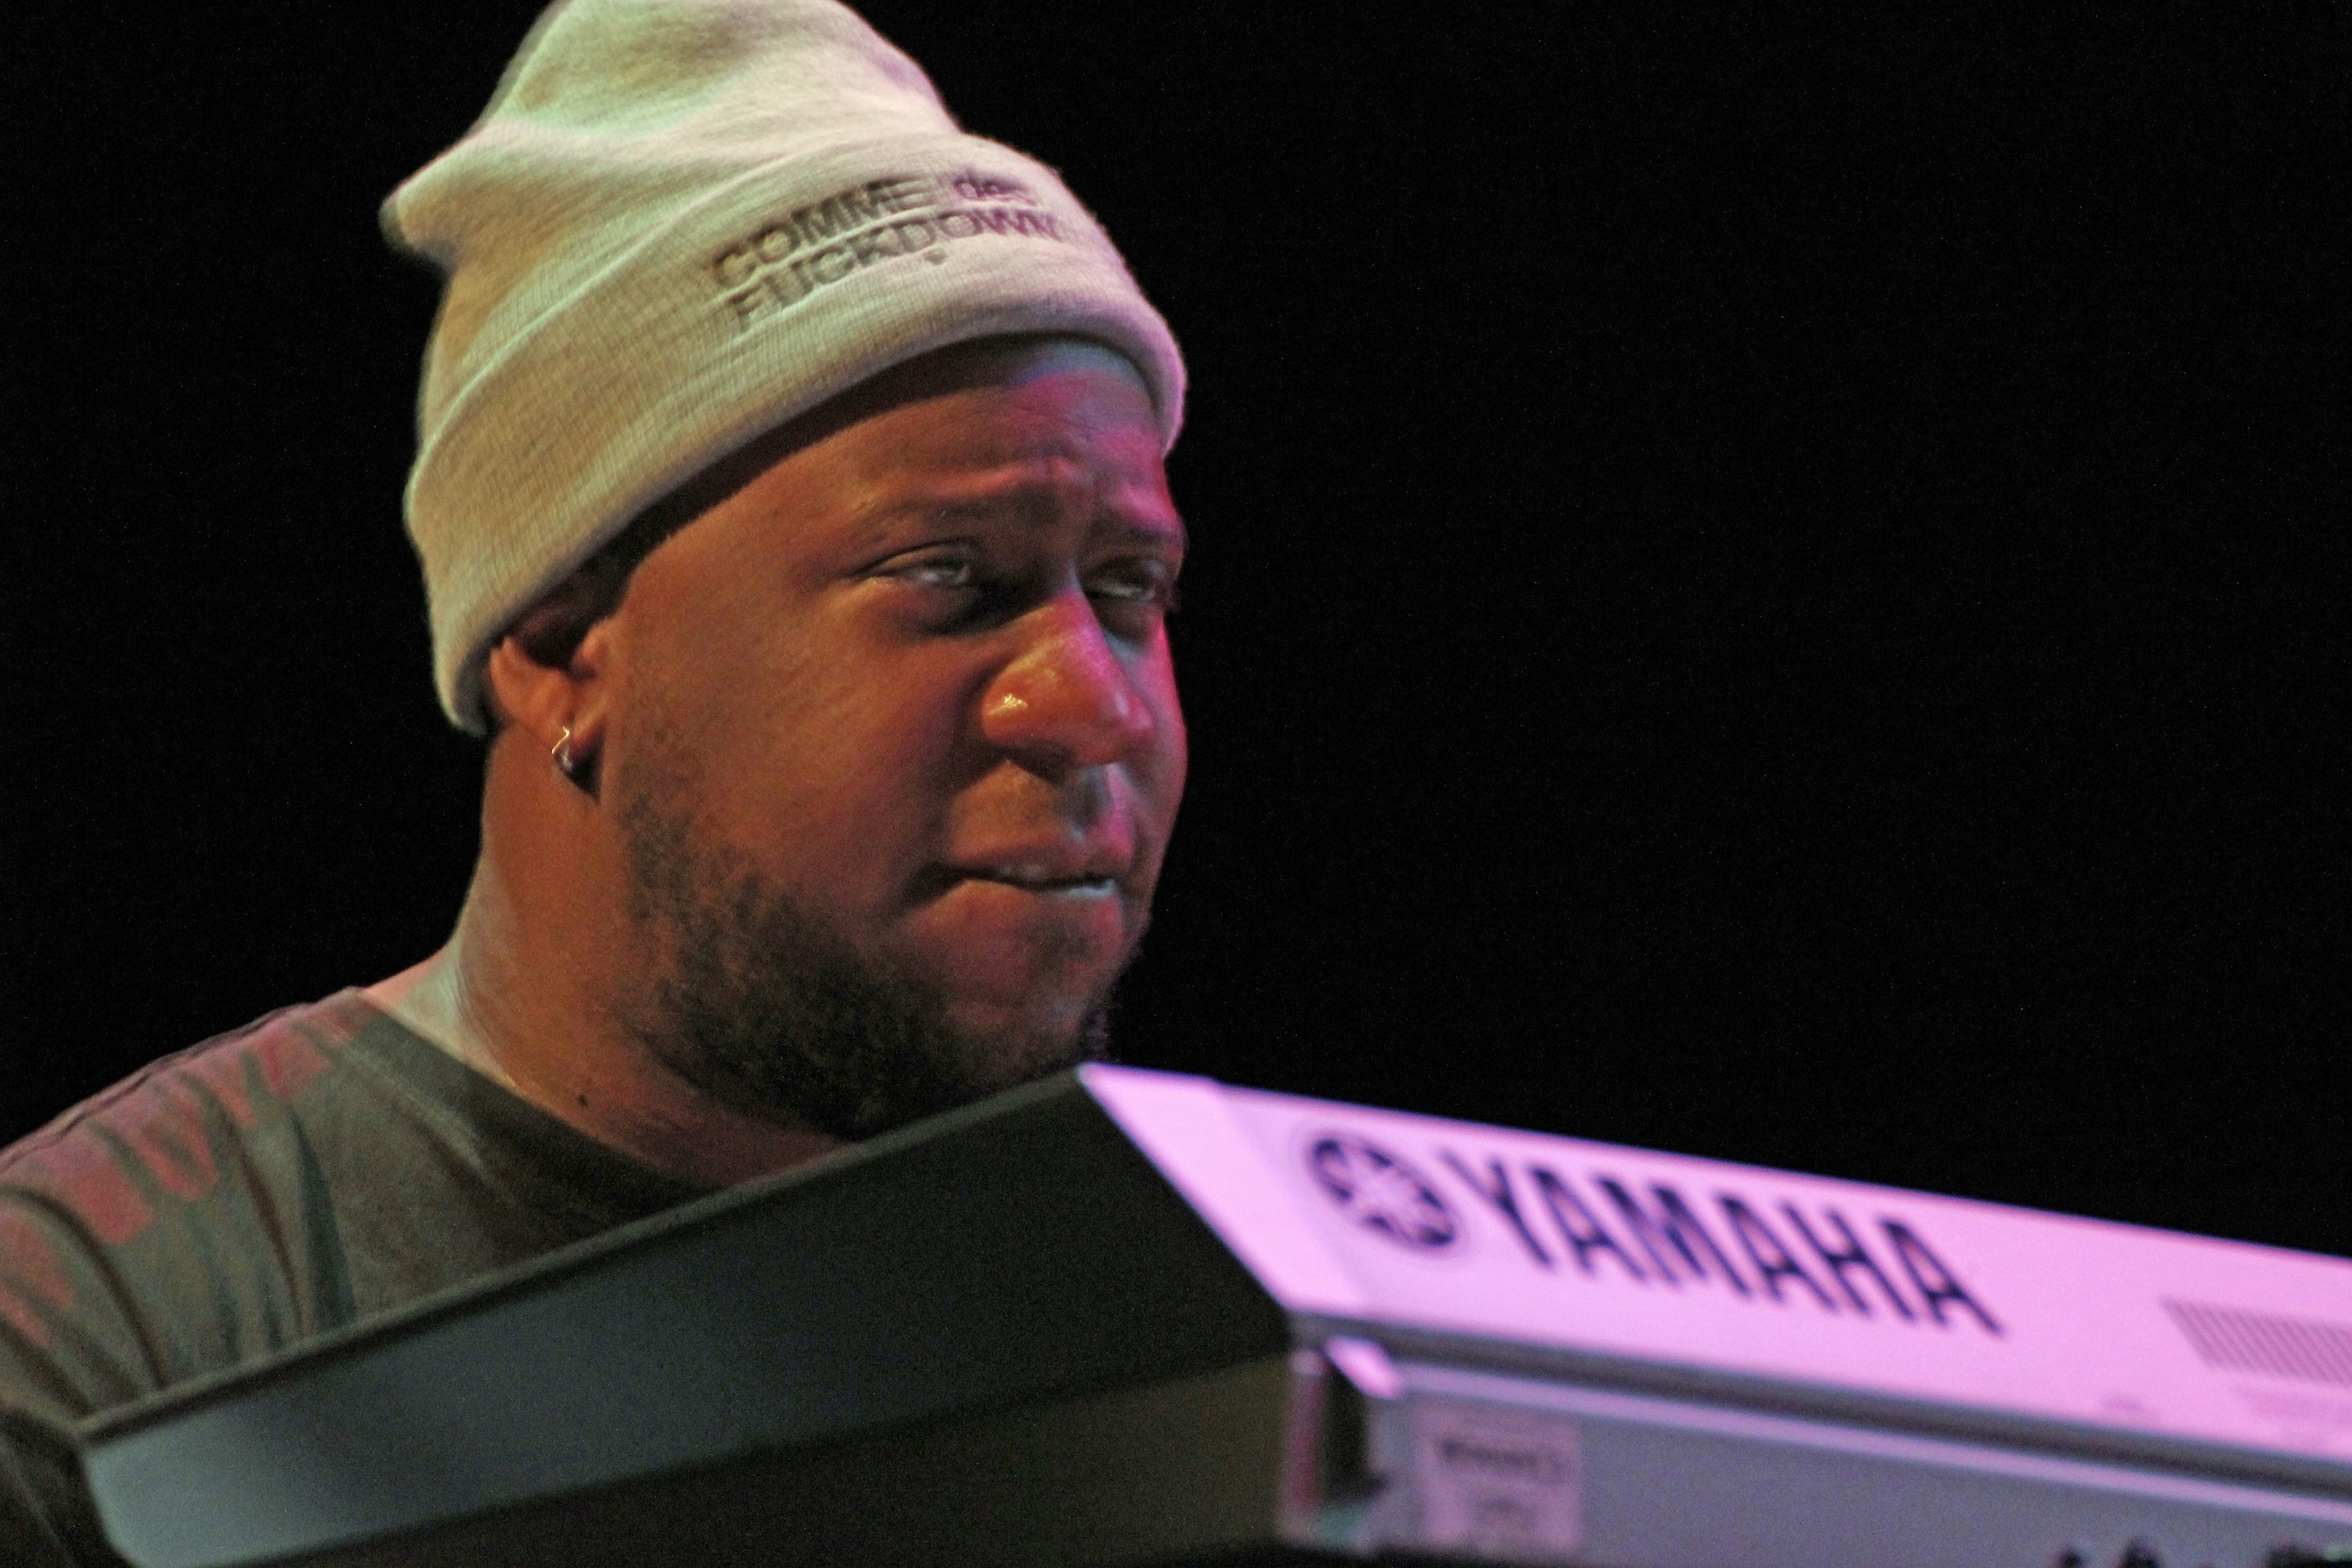 Robert glasper at tri-c jazzfest cleveland